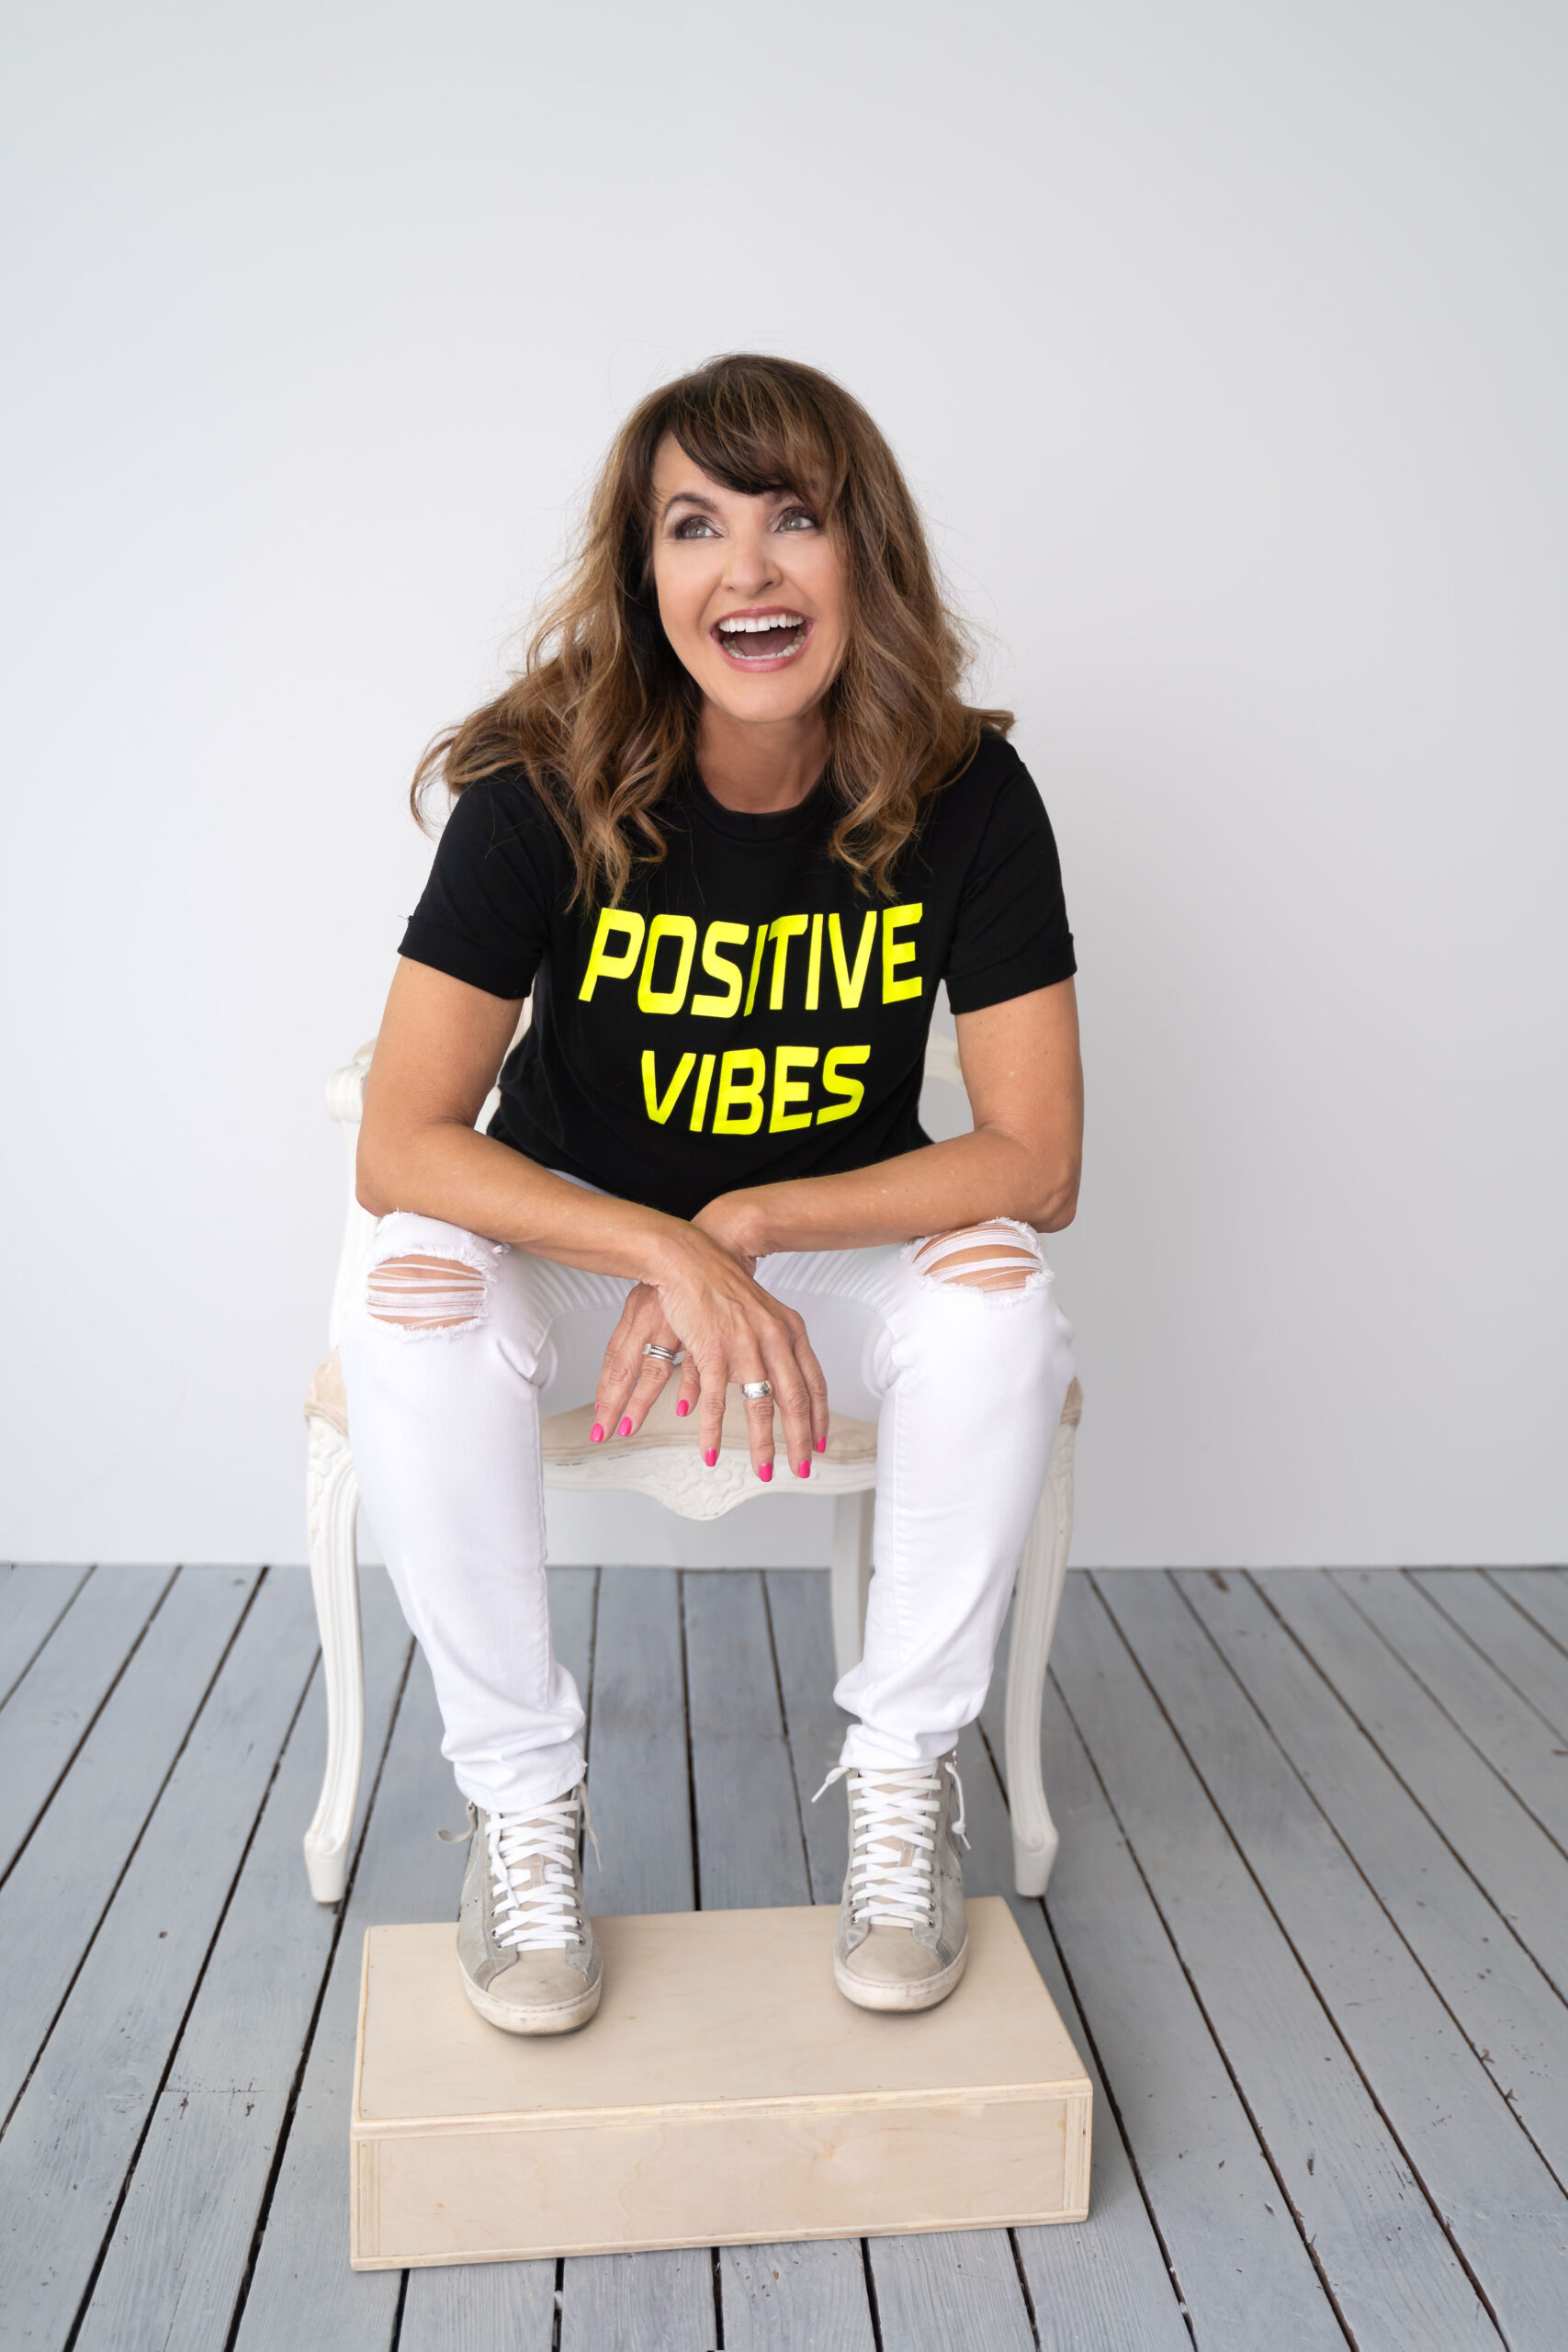 bonnie sitting in a chair wearing positive vibes shirt